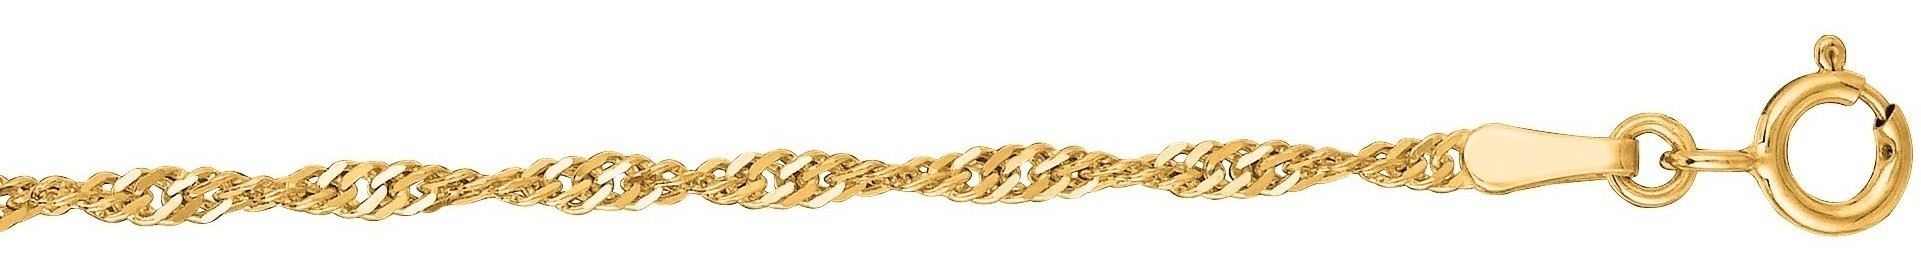 "16"" 10K Yellow Gold 1.7mm (0.07"") Polished Diamond Cut Singapore Chain w/ Spring Ring Clasp"